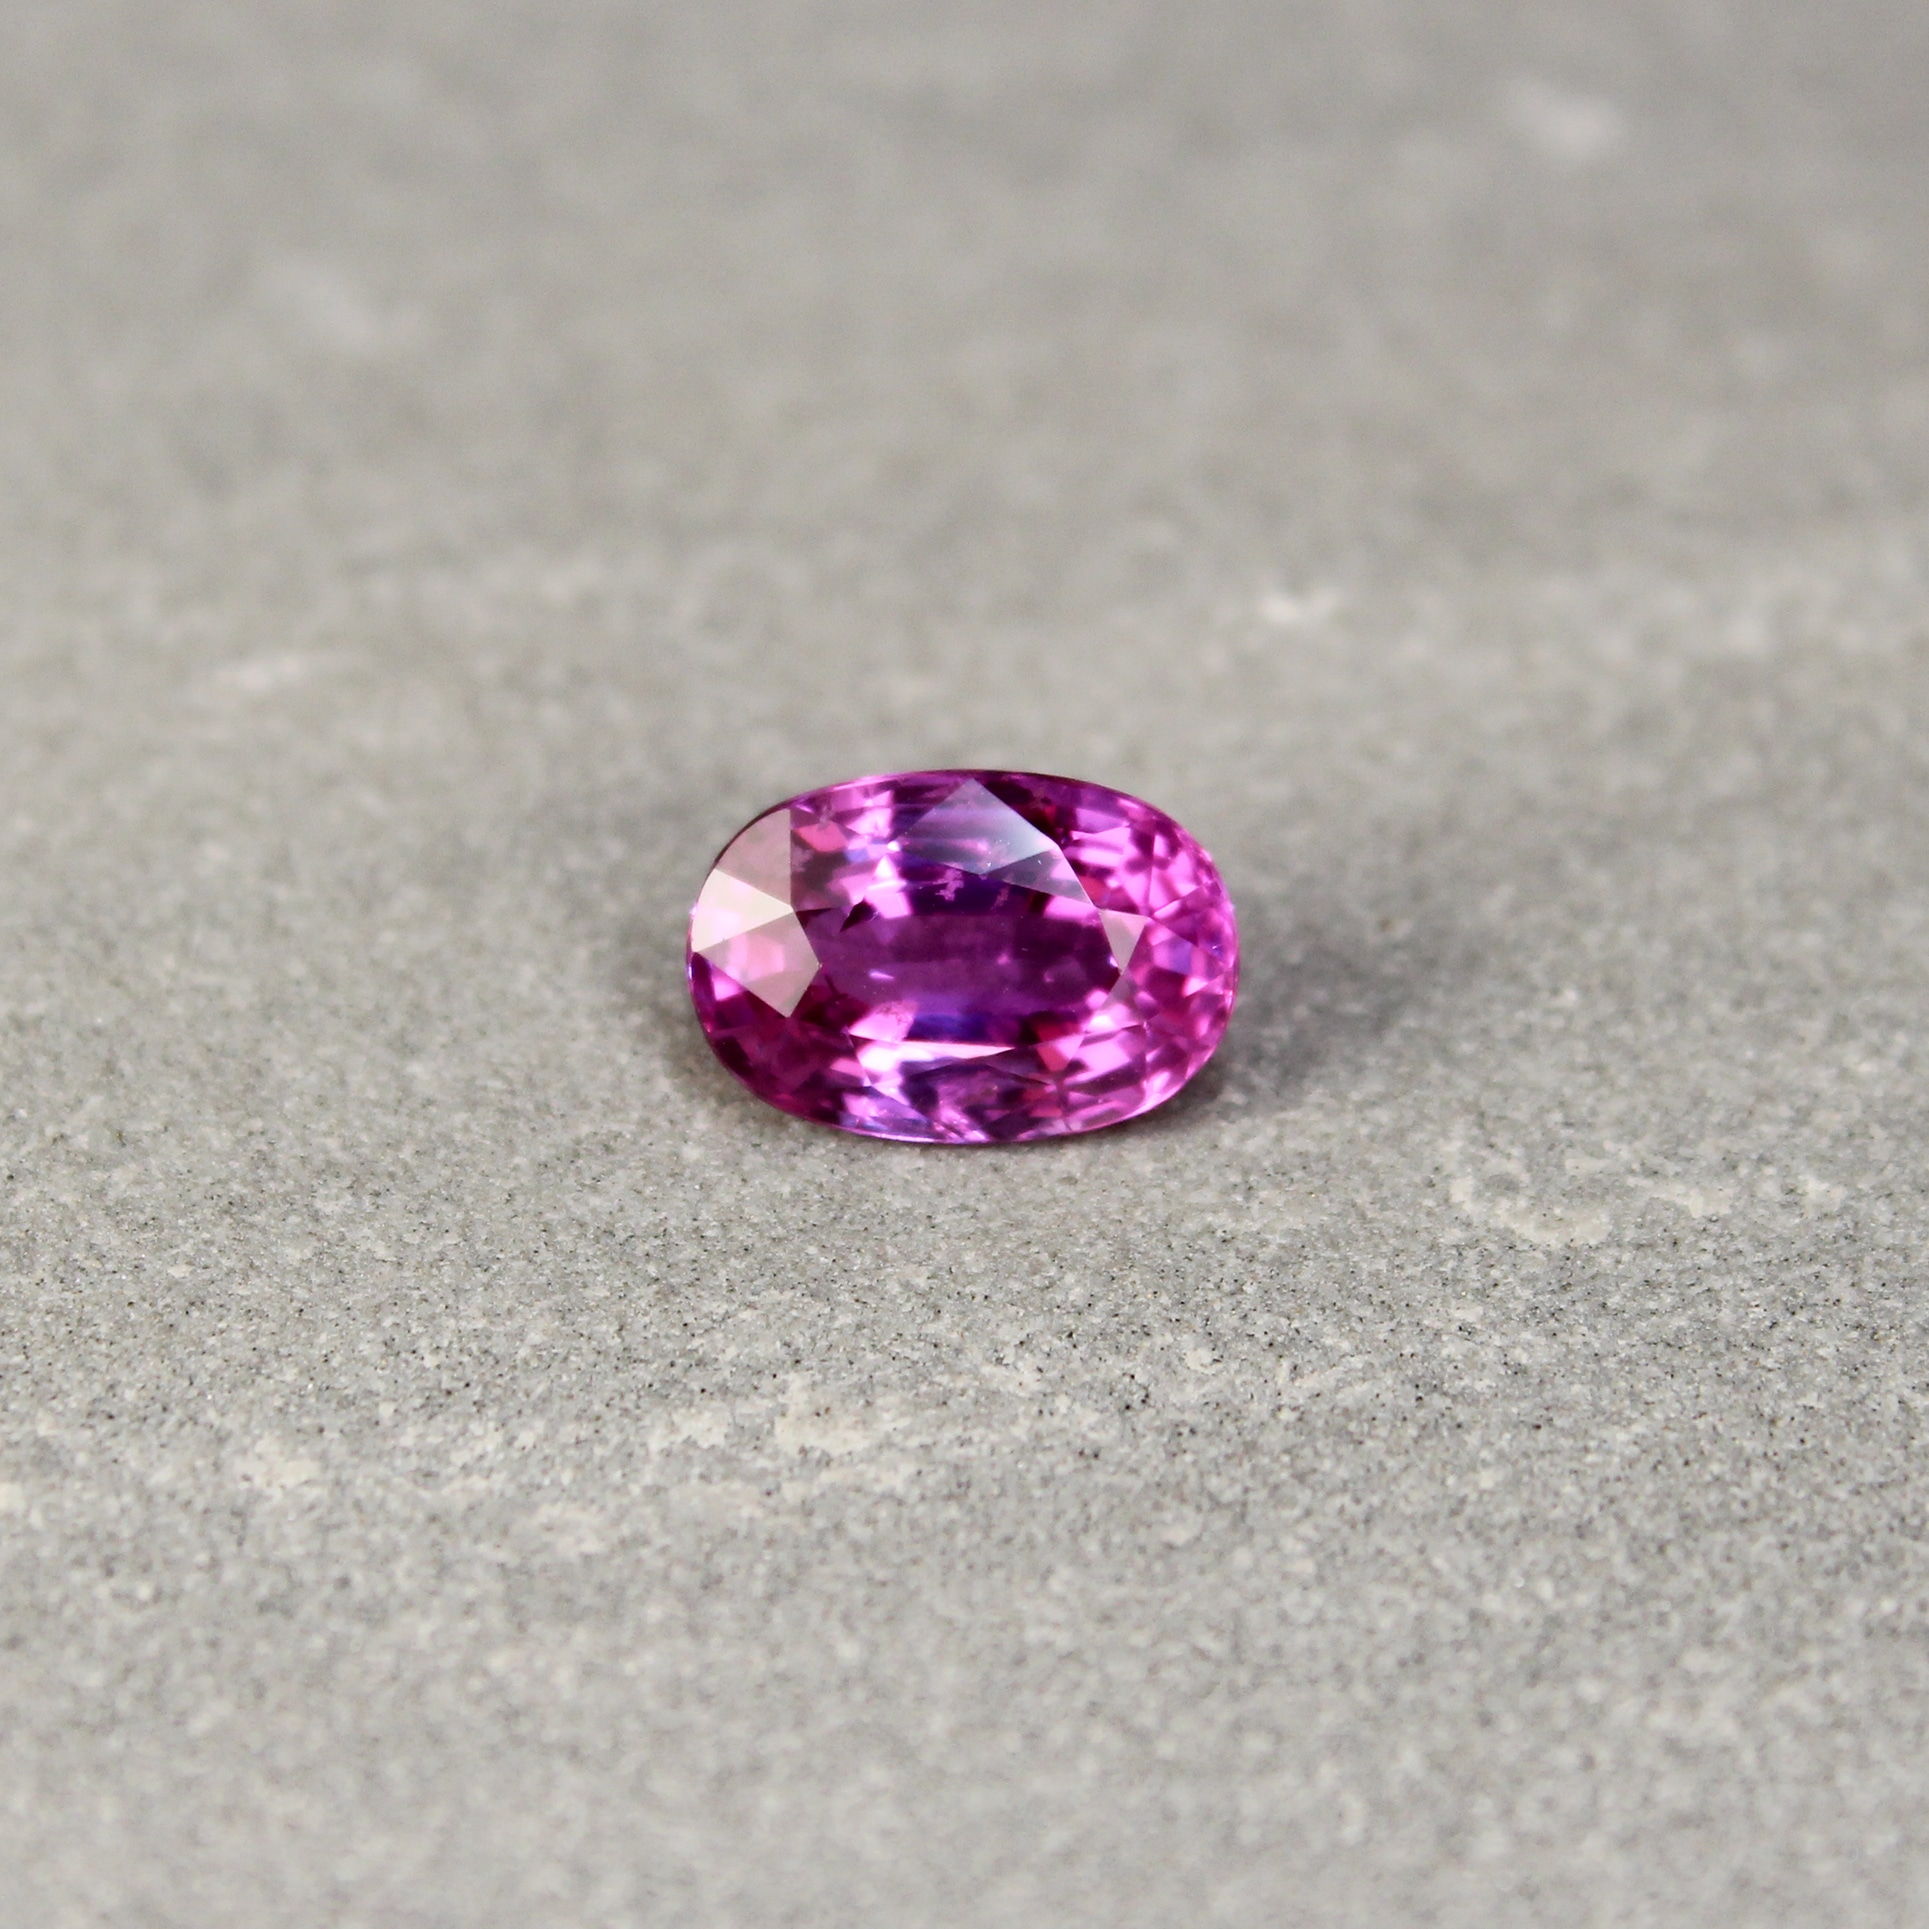 3.35 ct pink oval sapphire